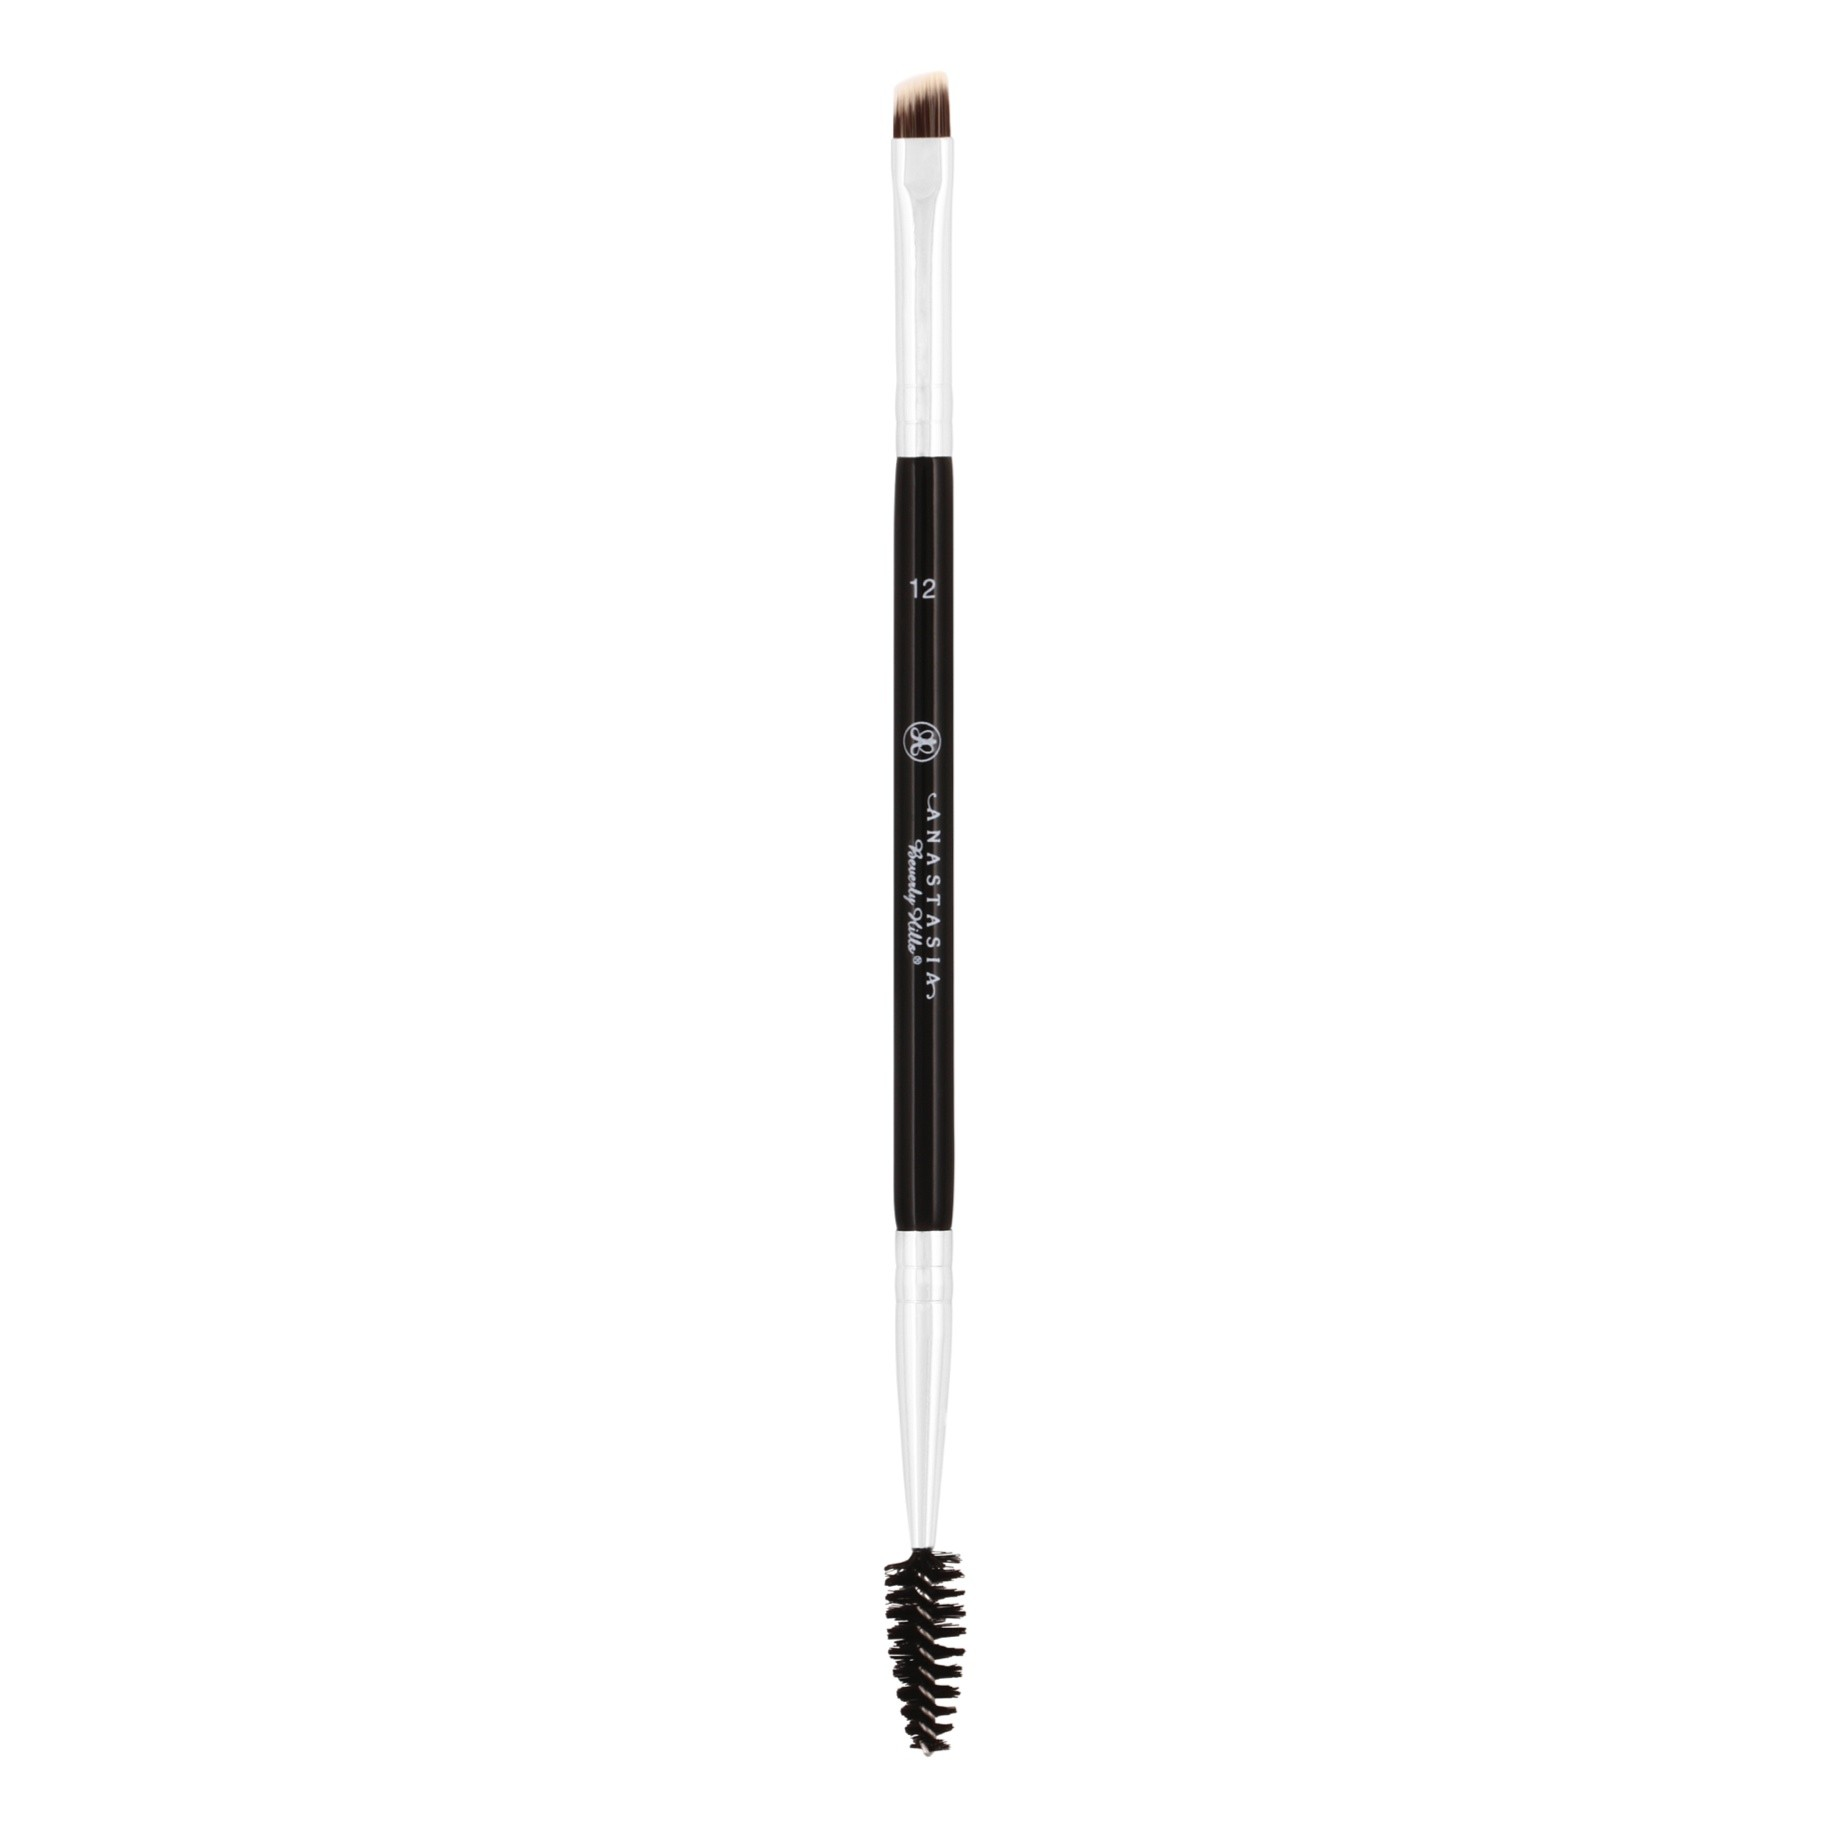 ANASTASIA BEVERLY HILLS ����� ��� ������ 12 / Brow Brush-Duo Synthetic Large